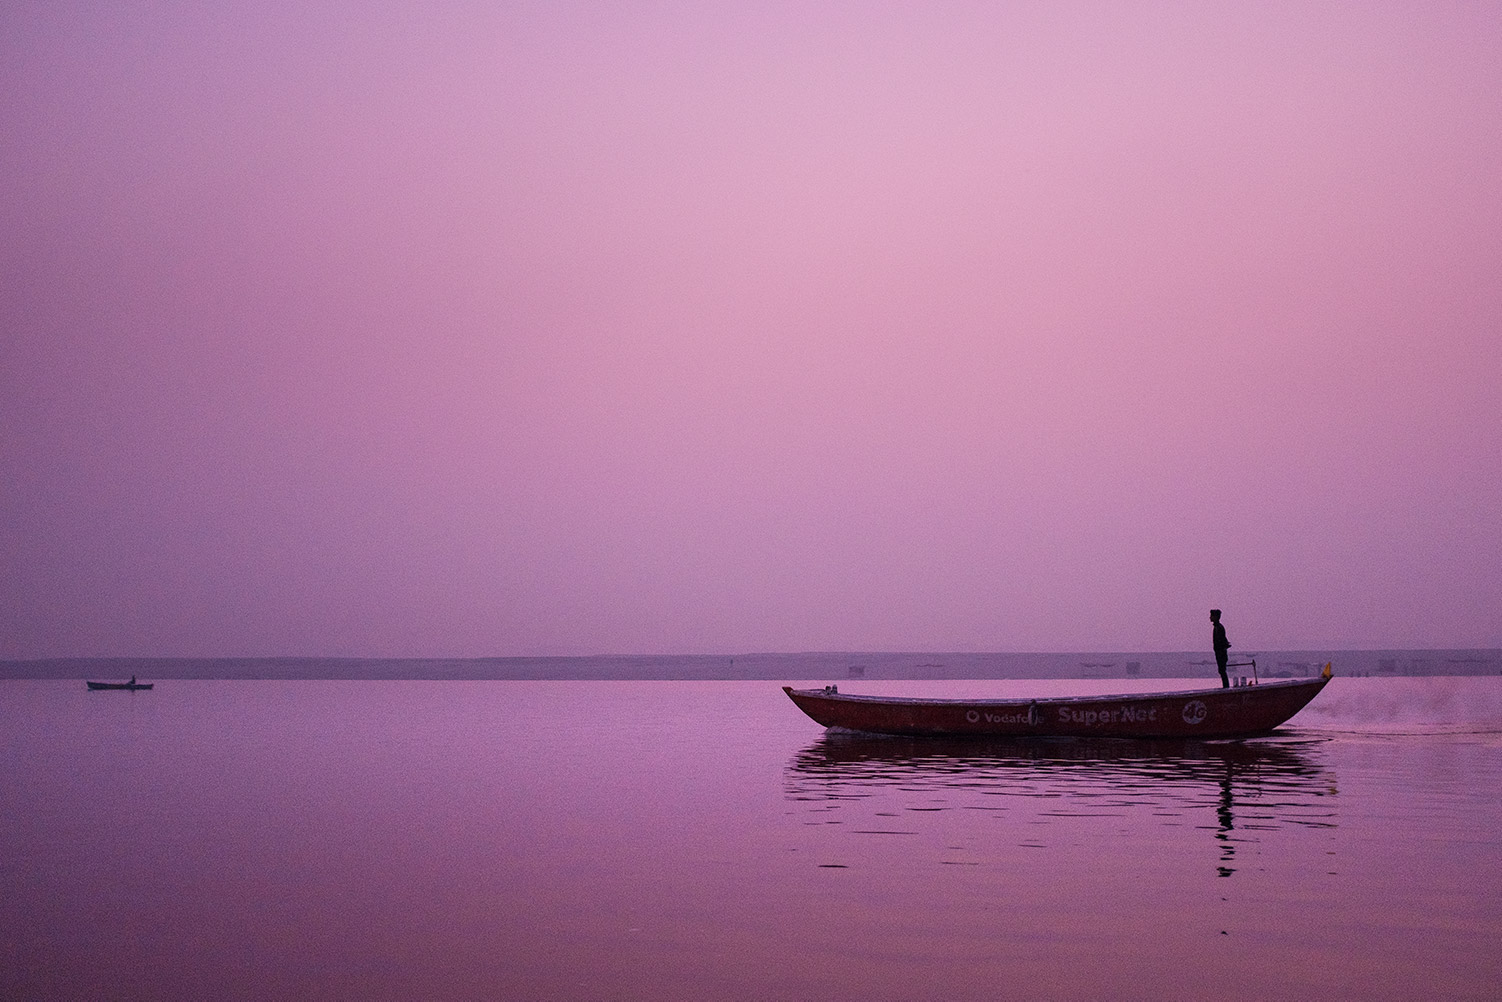 Boatman on the river Ganges in India